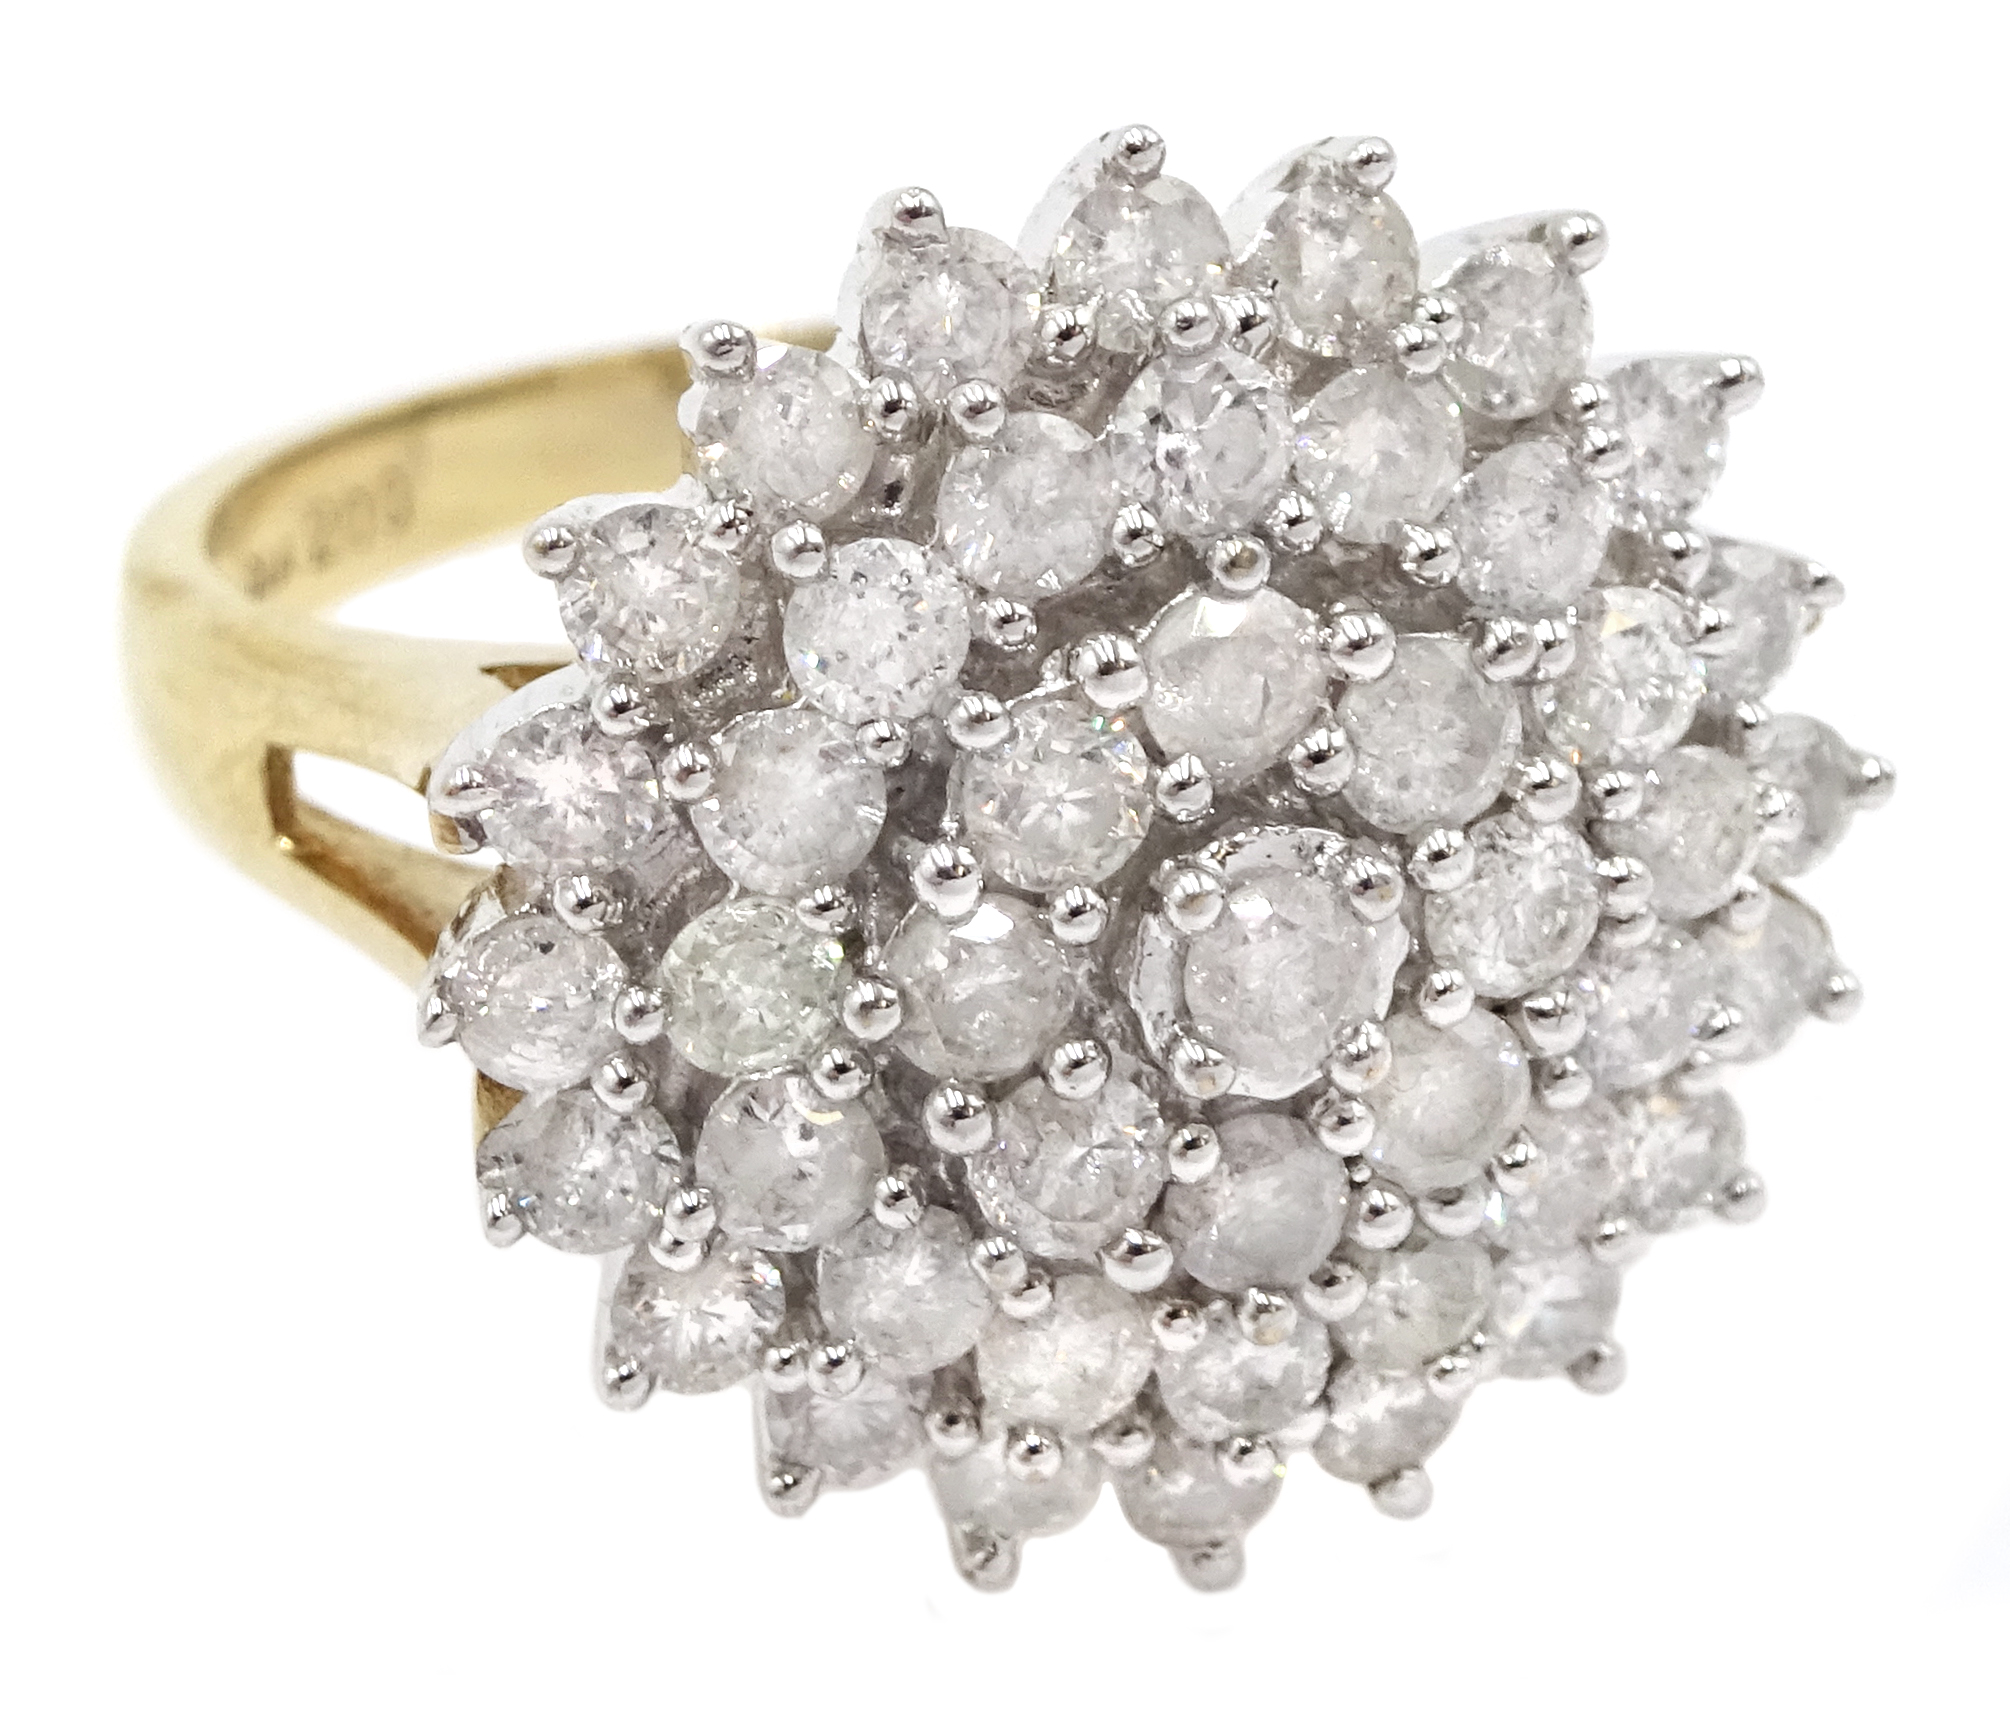 9ct gold cluster ring - Image 3 of 6